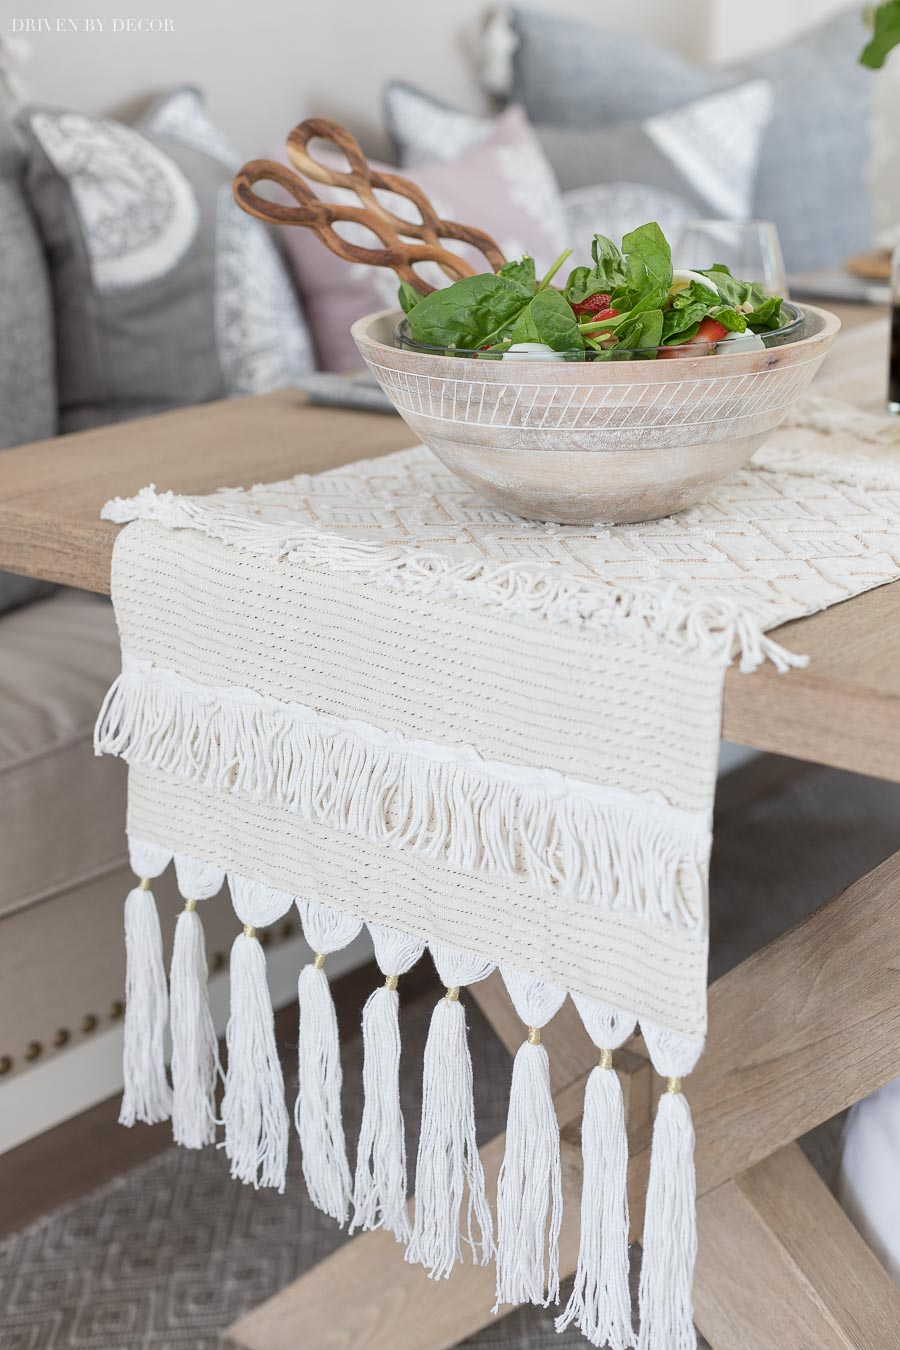 Gorgeous textured table runner with fringed ends!